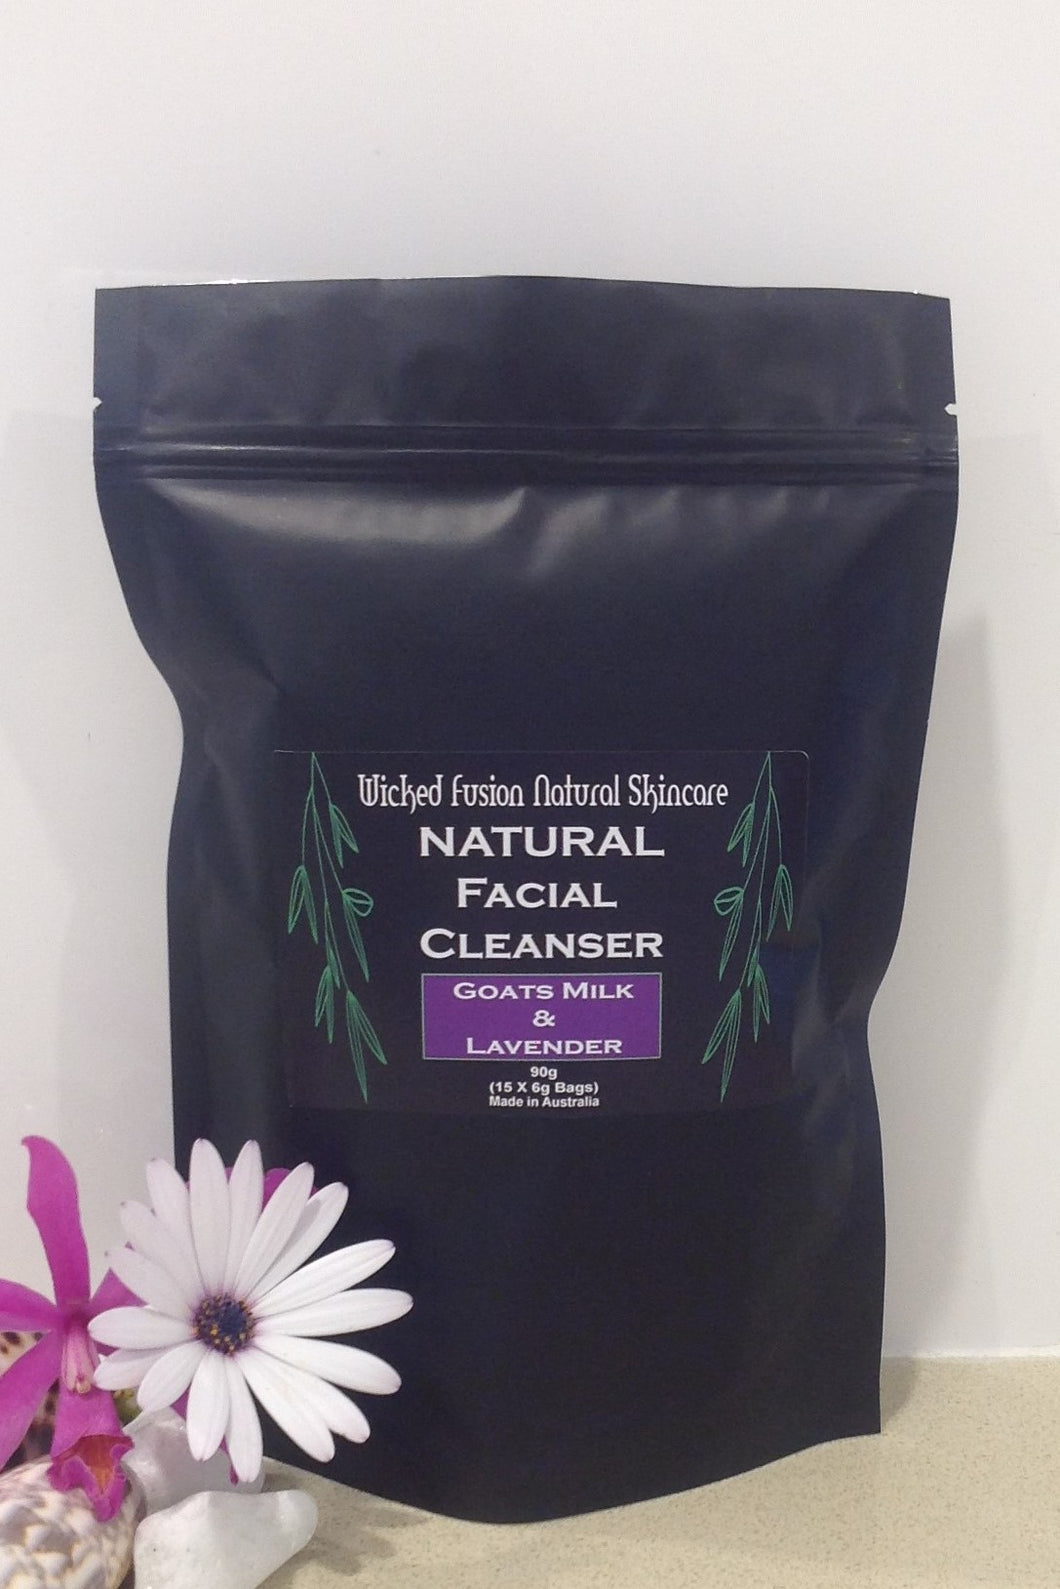 Goats Milk & Lavender Facial Cleanser